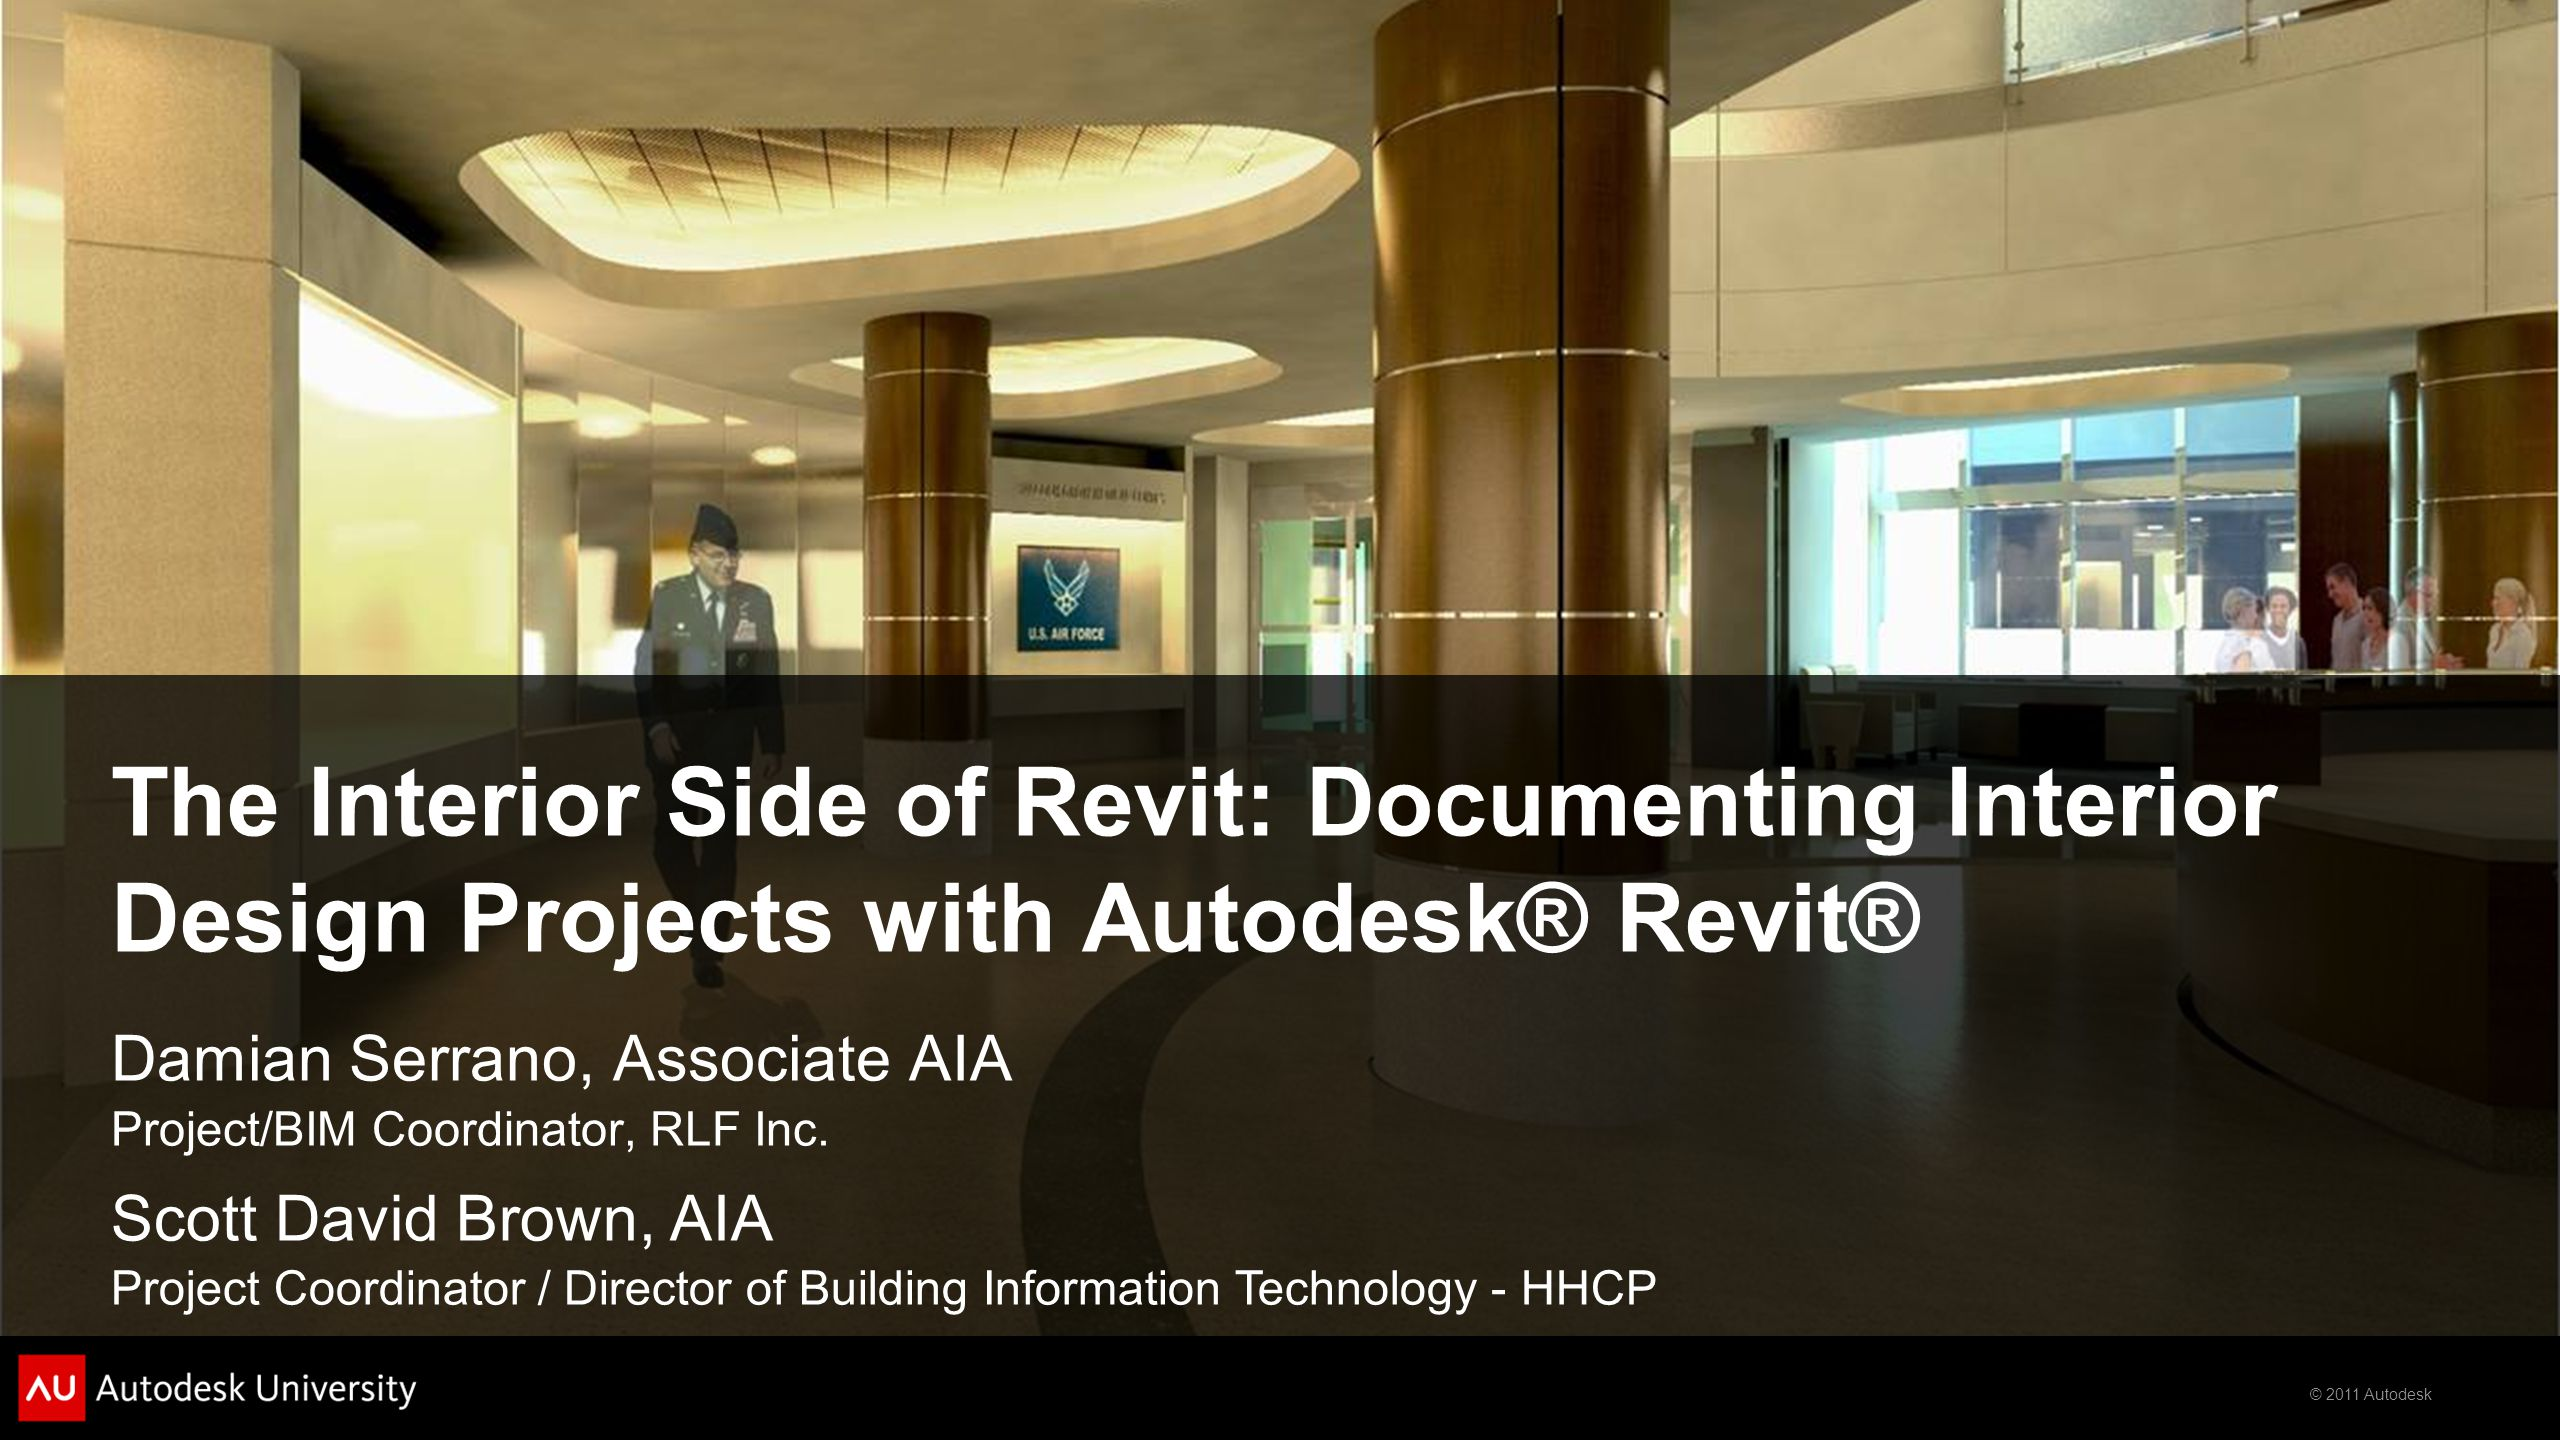 The Interior Side of Revit: Documenting Interior Design Projects with Autodesk® Revit®